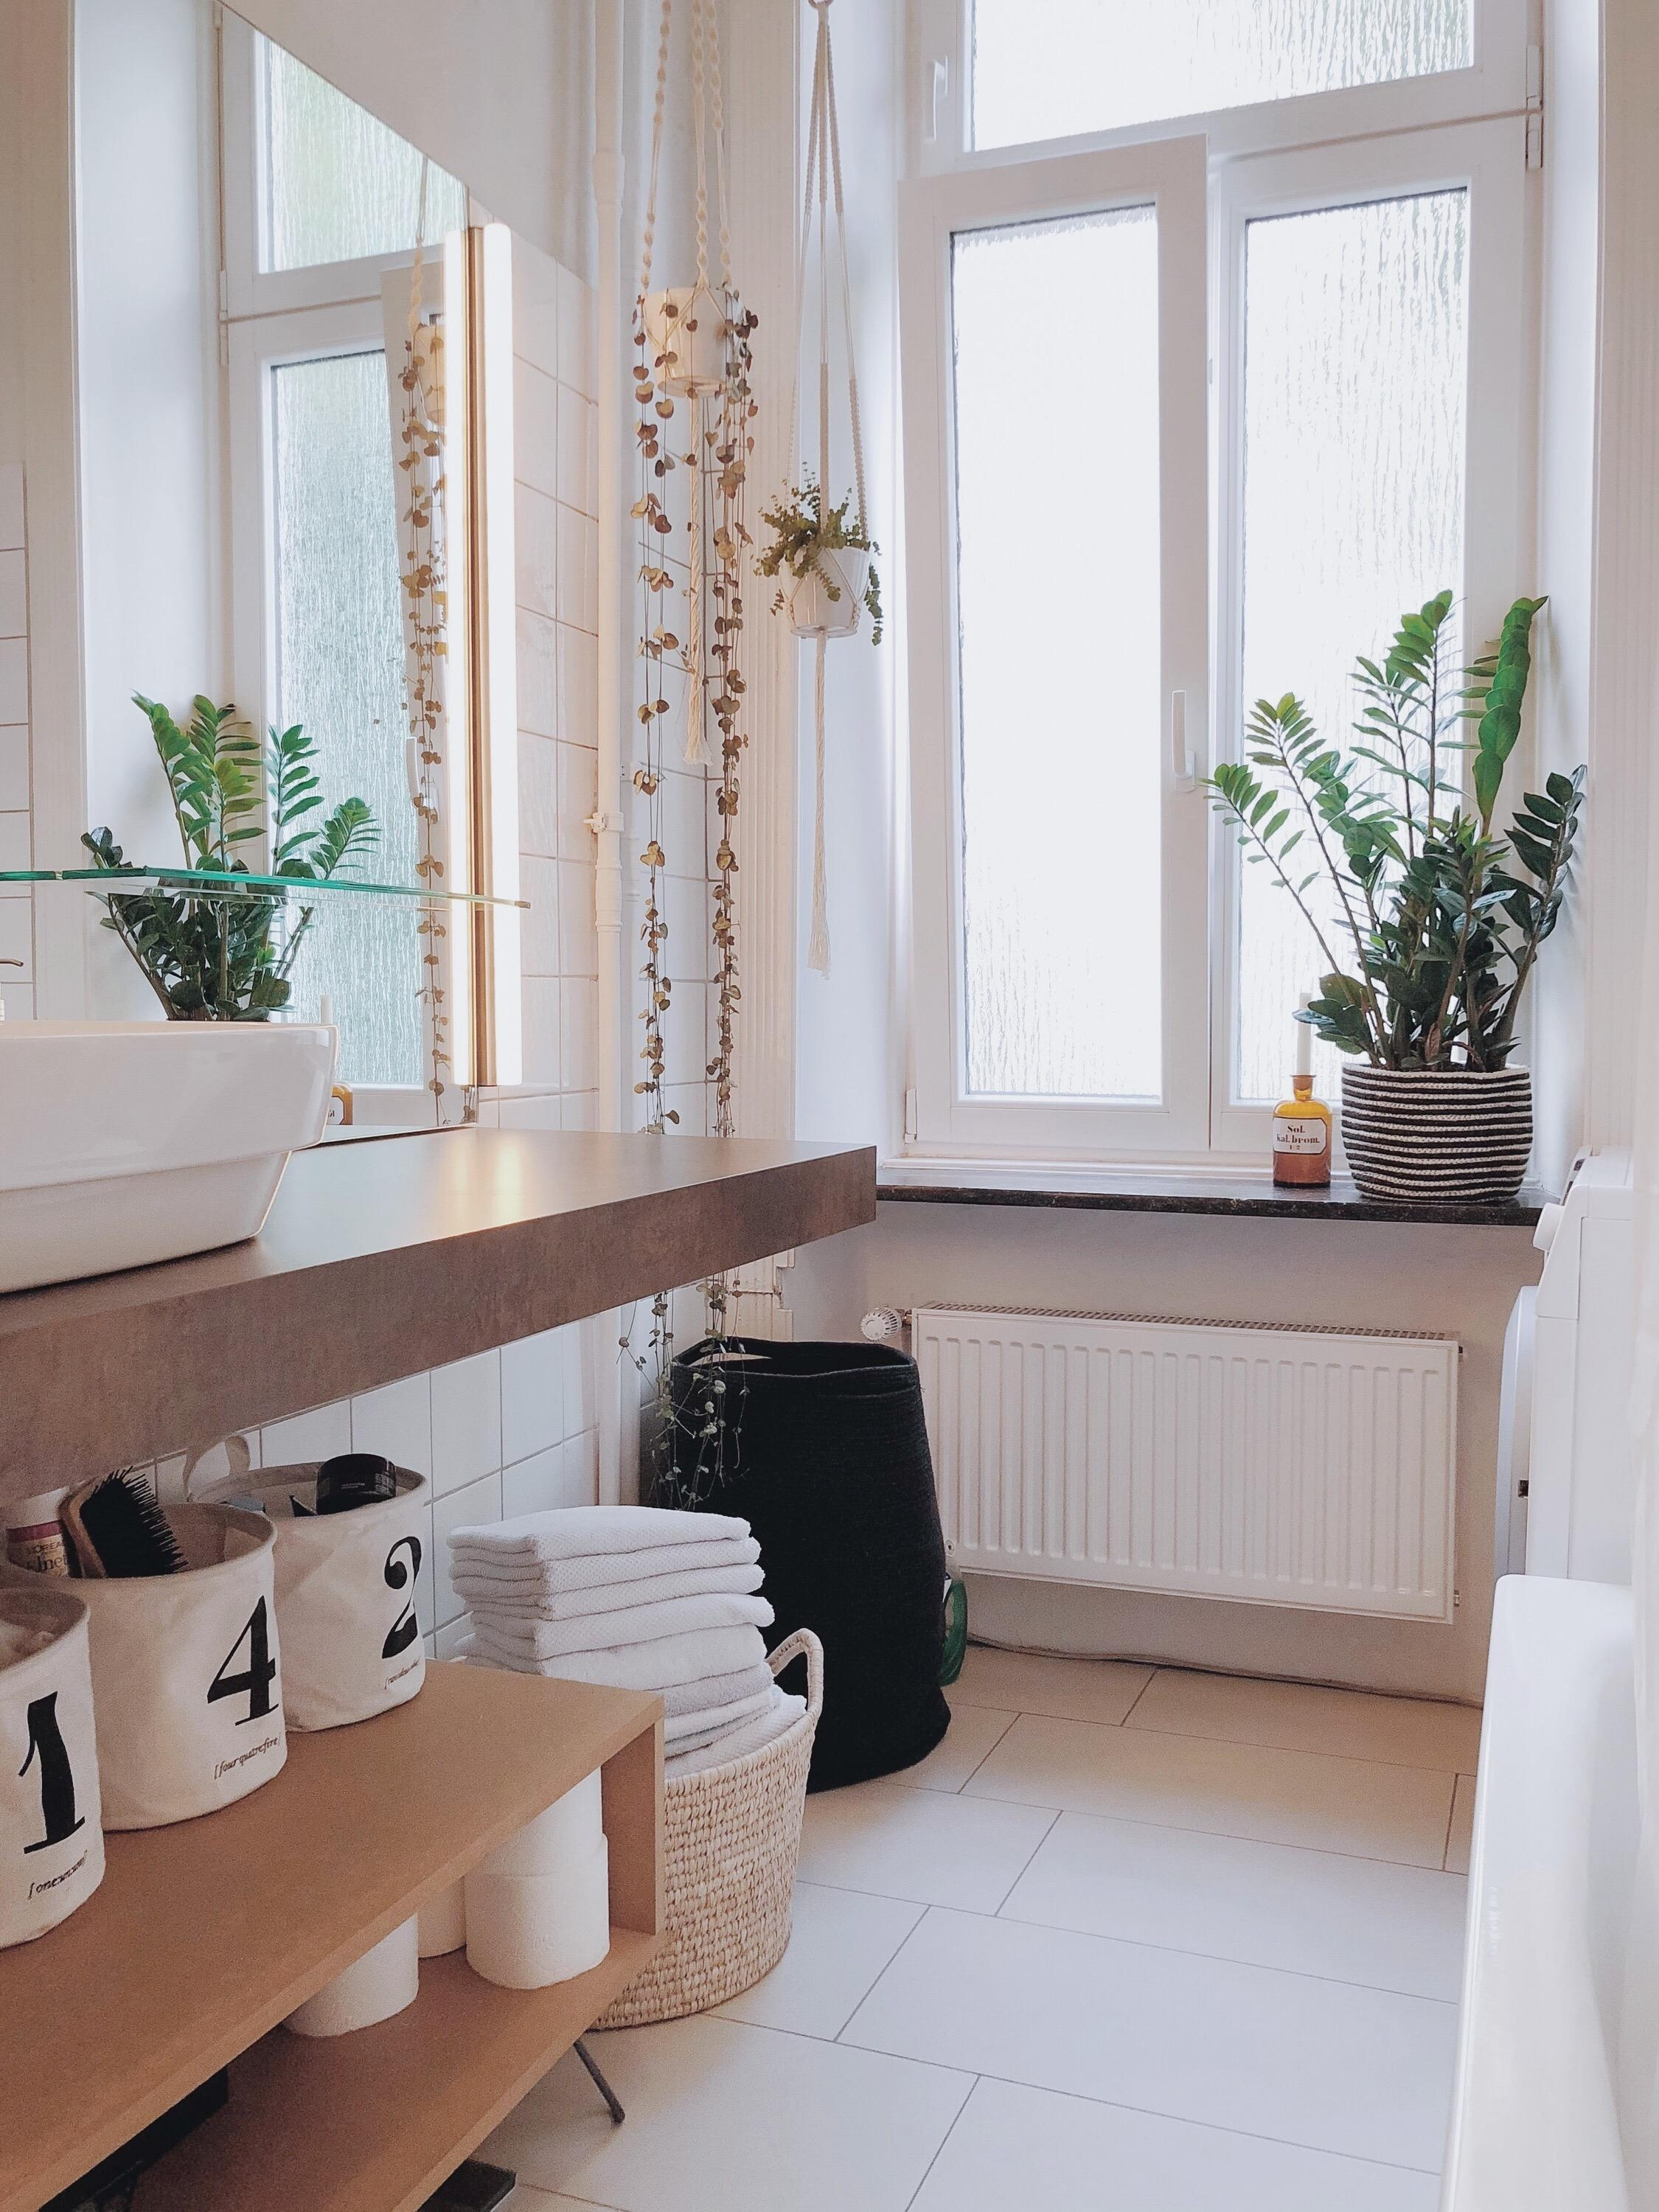 Retro-Badezimmer: So bringst du Nostalgie ins Bad!